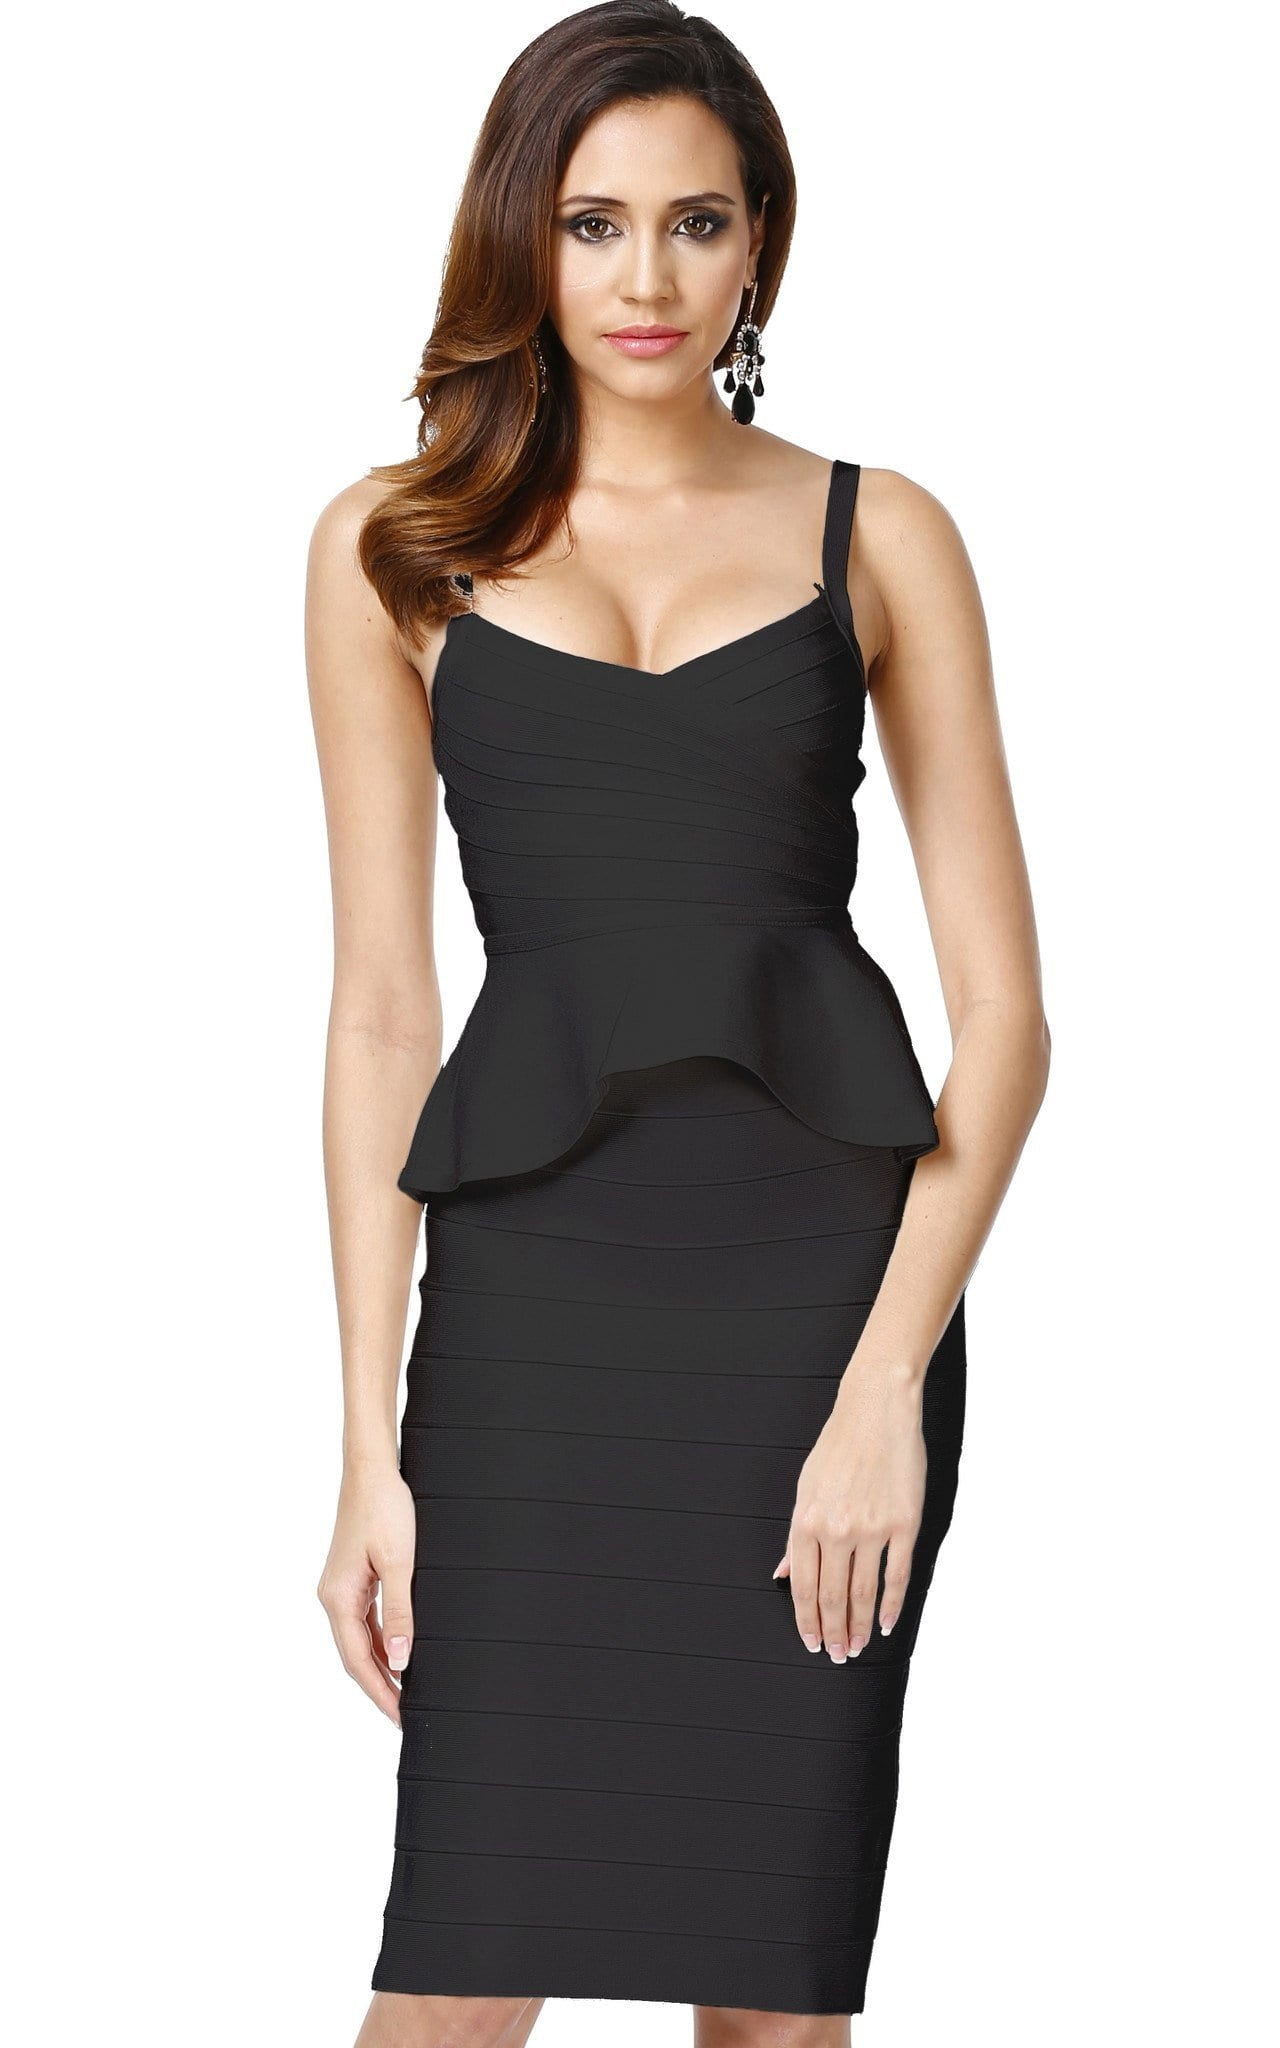 07242732476c bandage-black-two-piece-peplum-bandage-dress-1.jpg v 1556105778